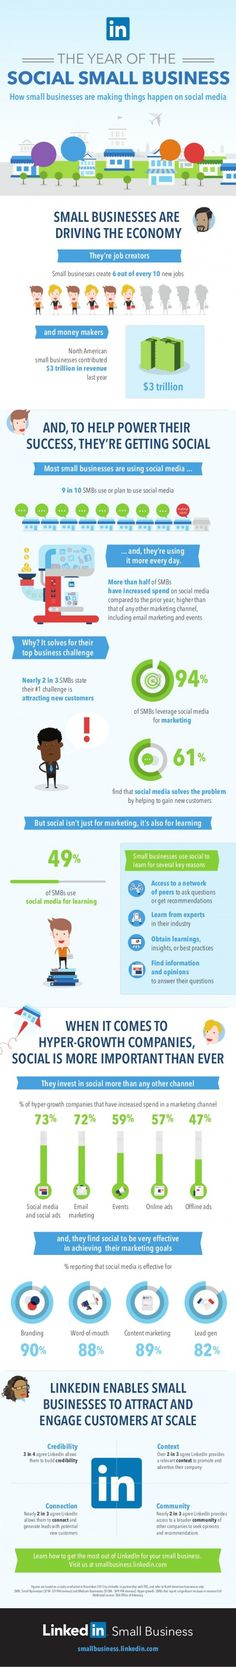 How are small businesses using Social Media? [Infographic]